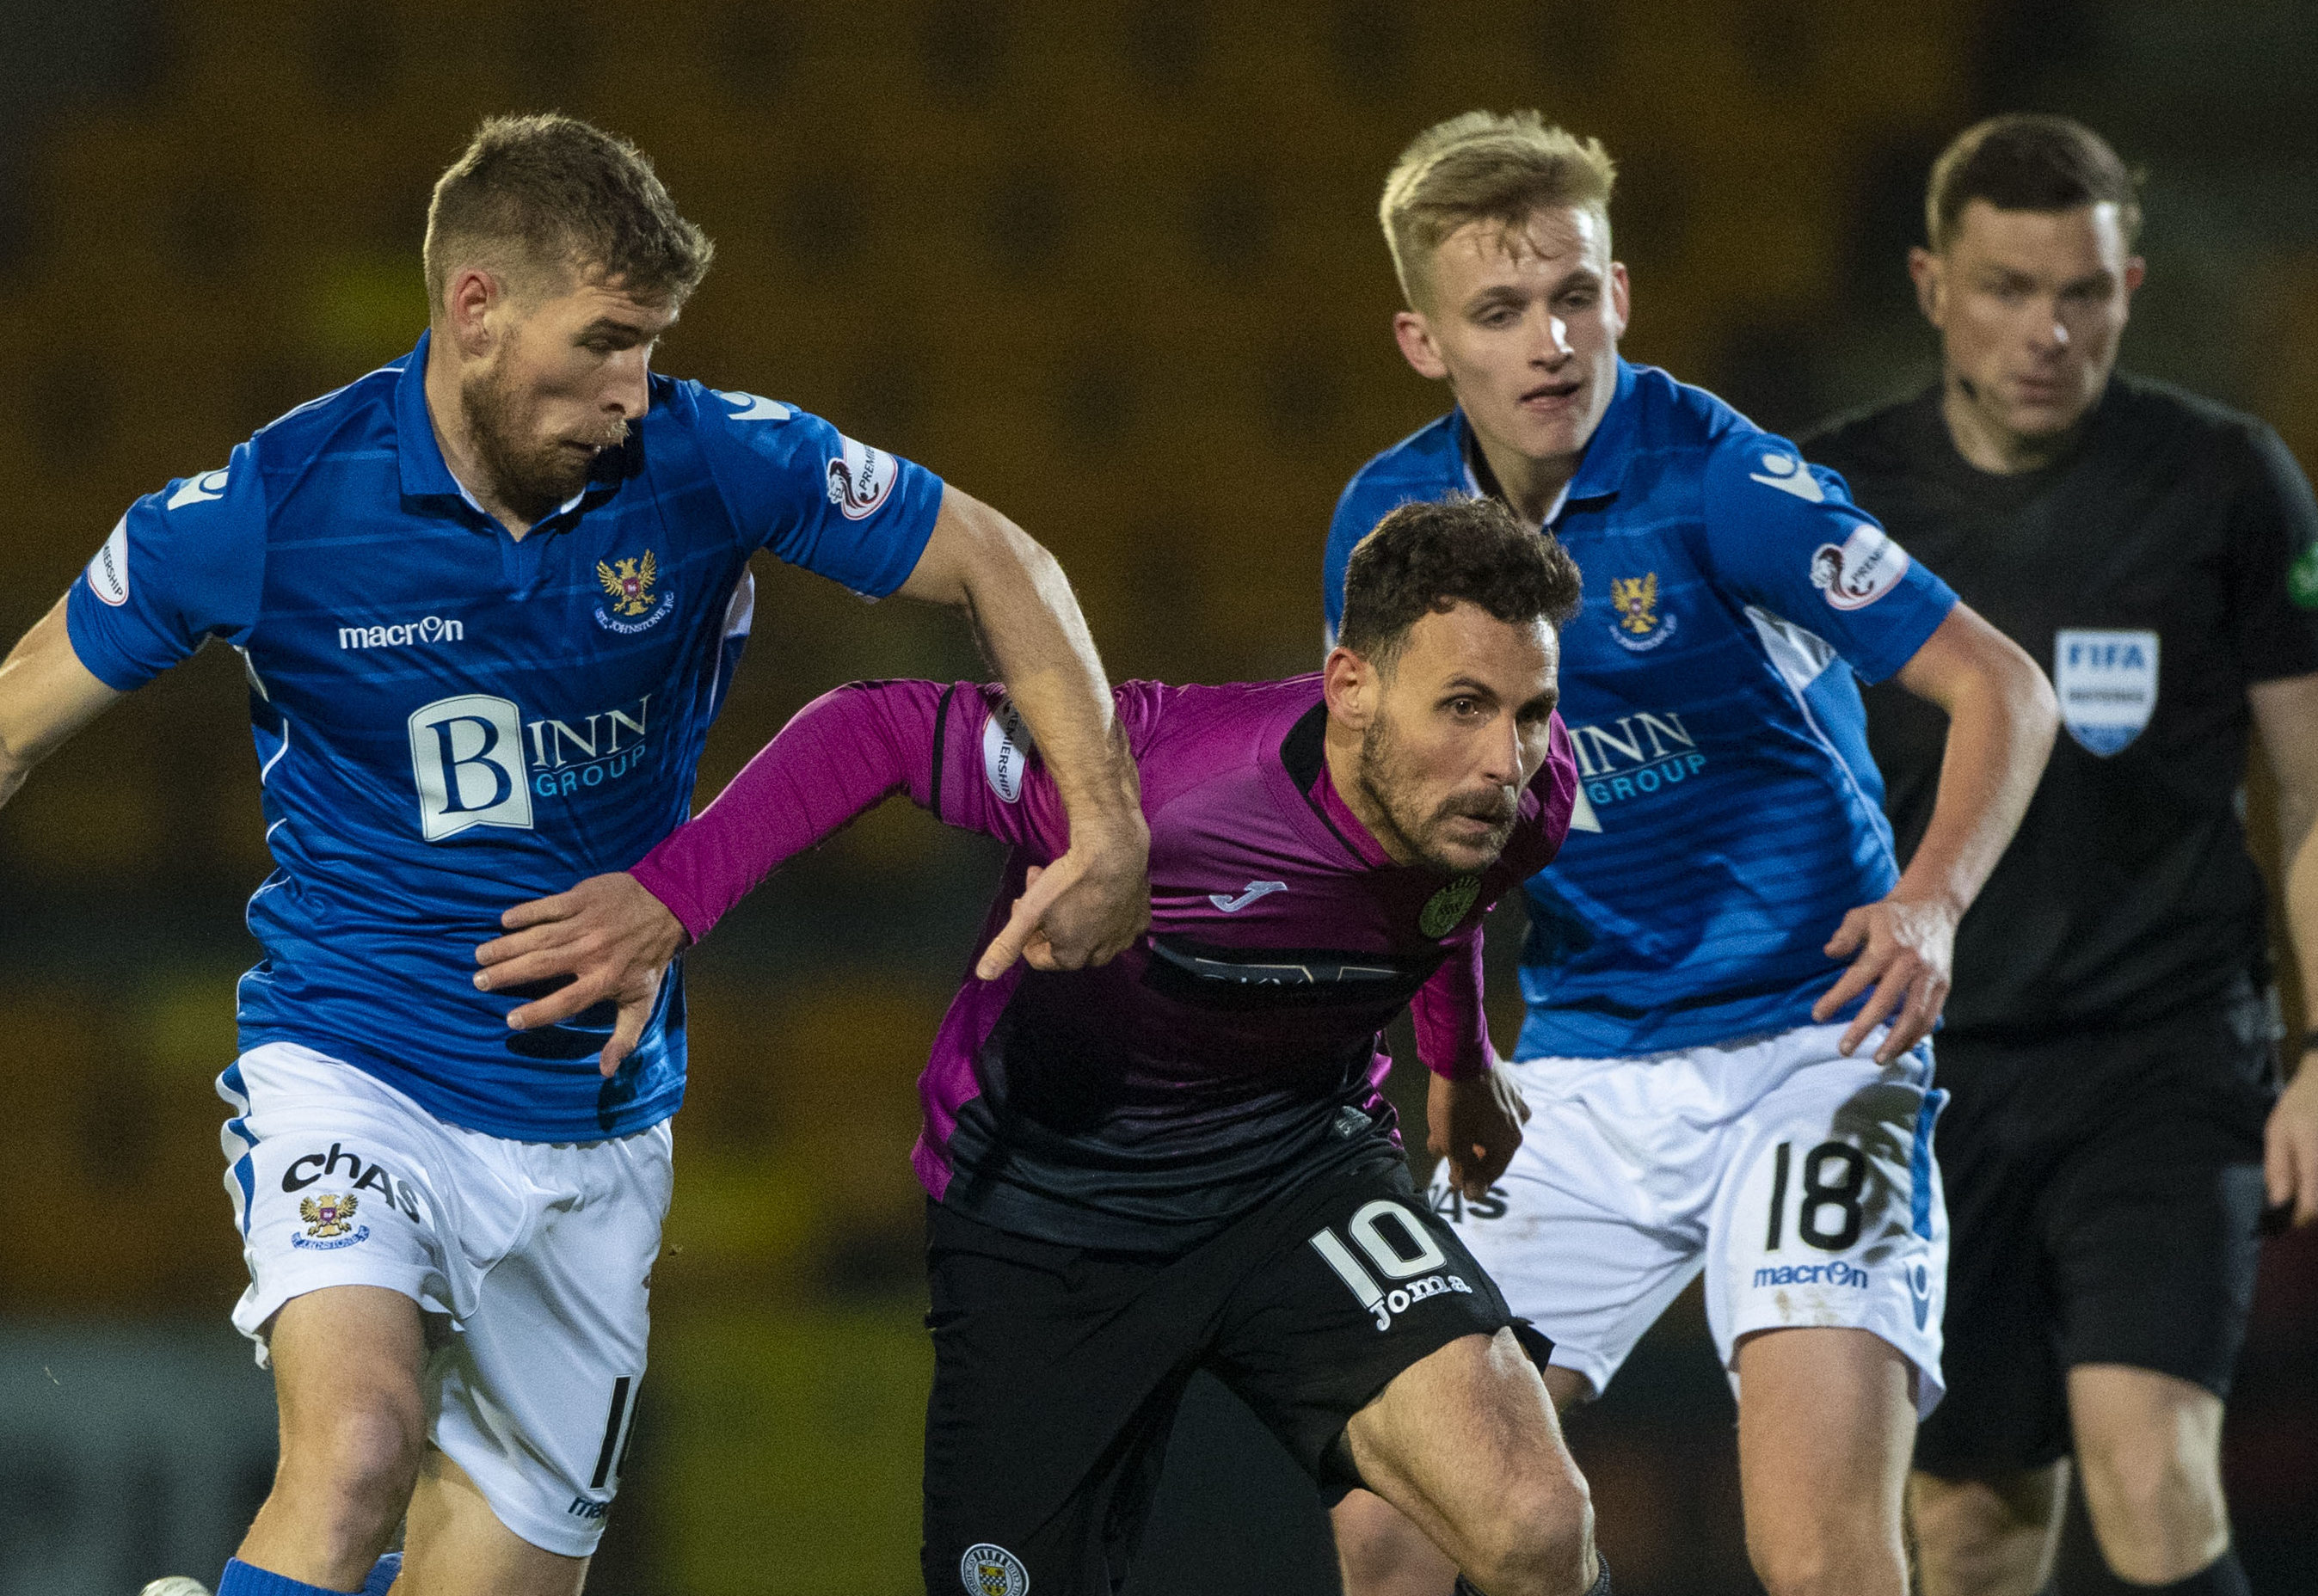 David Wotherspoon in action against St Mirren.